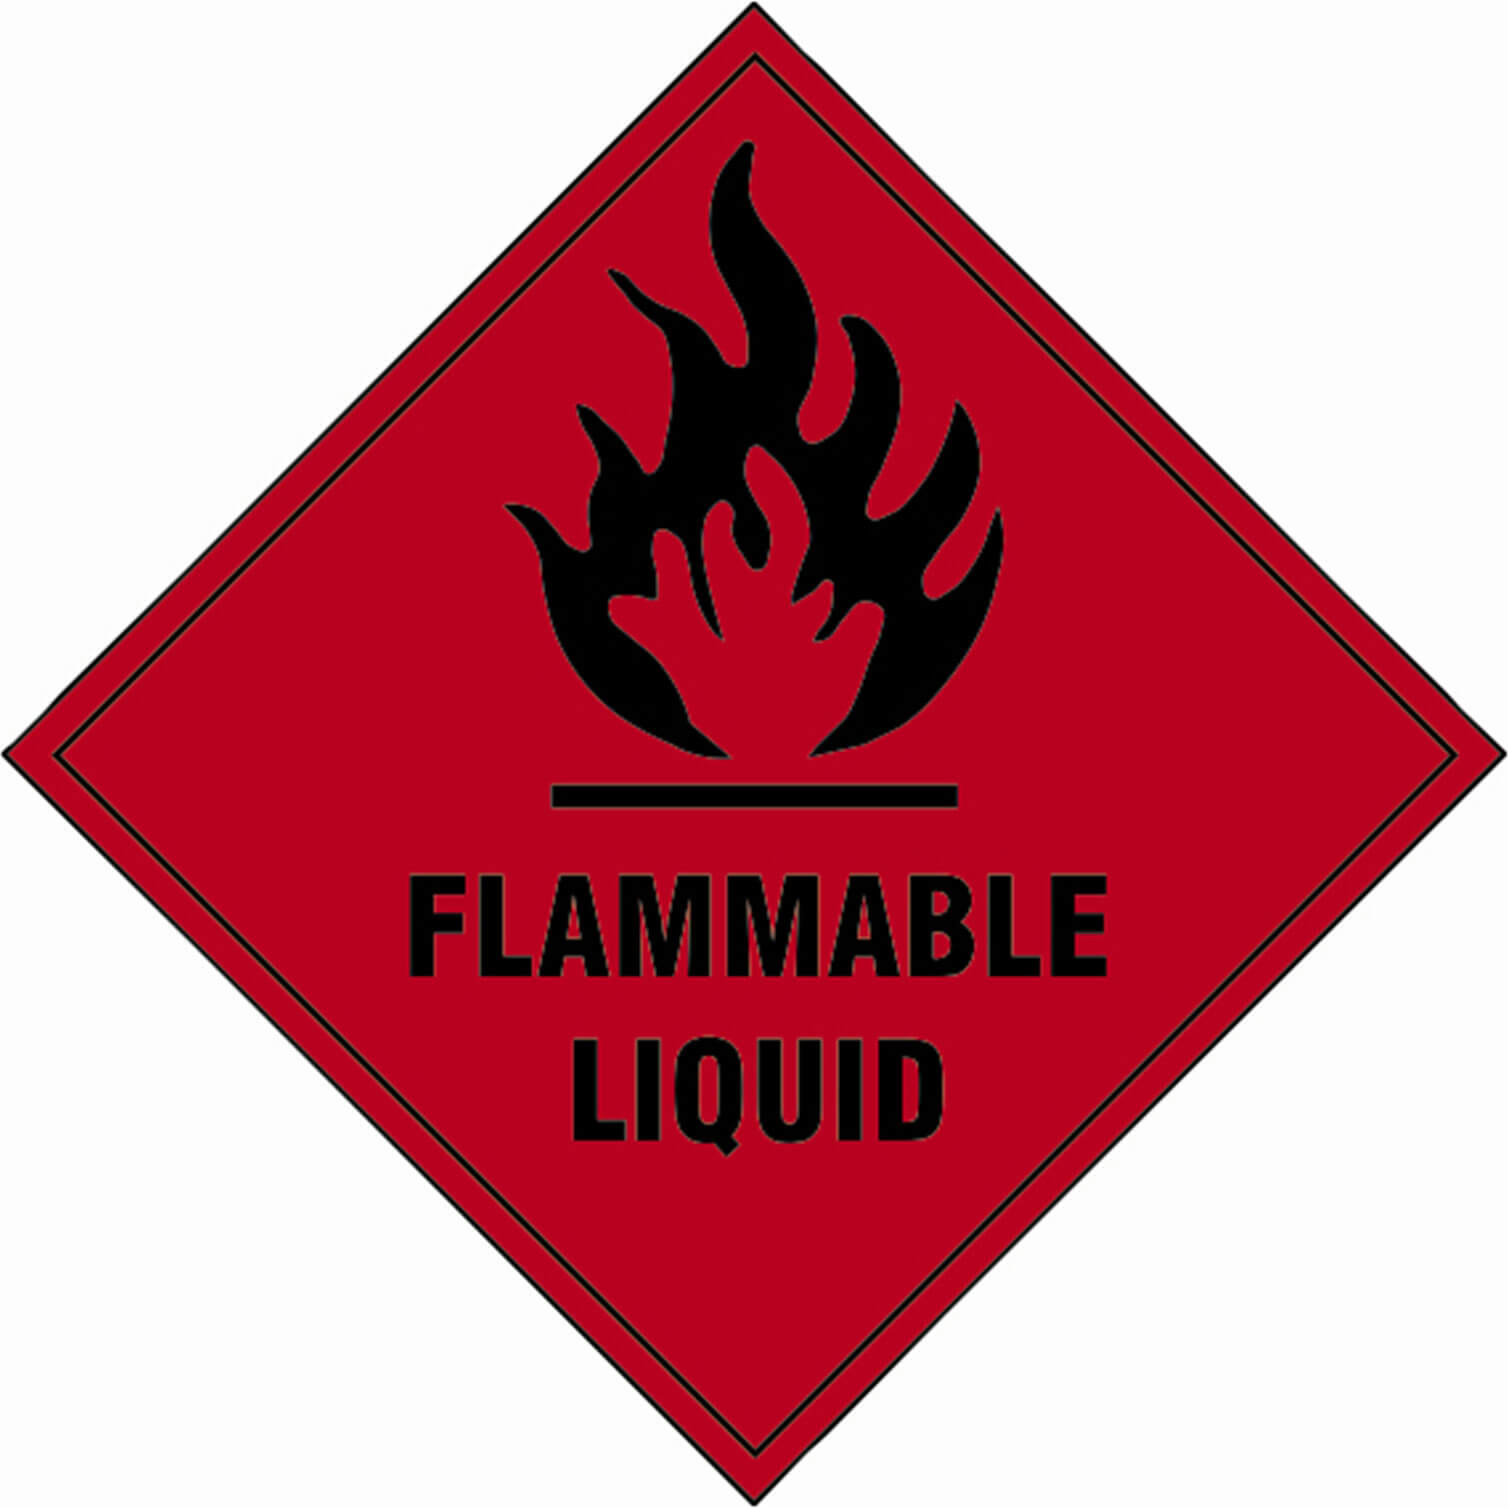 Tooled Up/Safety & Workwear/Safety/Scan 100 x 100mm SAV Diamond Sign - Flammable Liquid